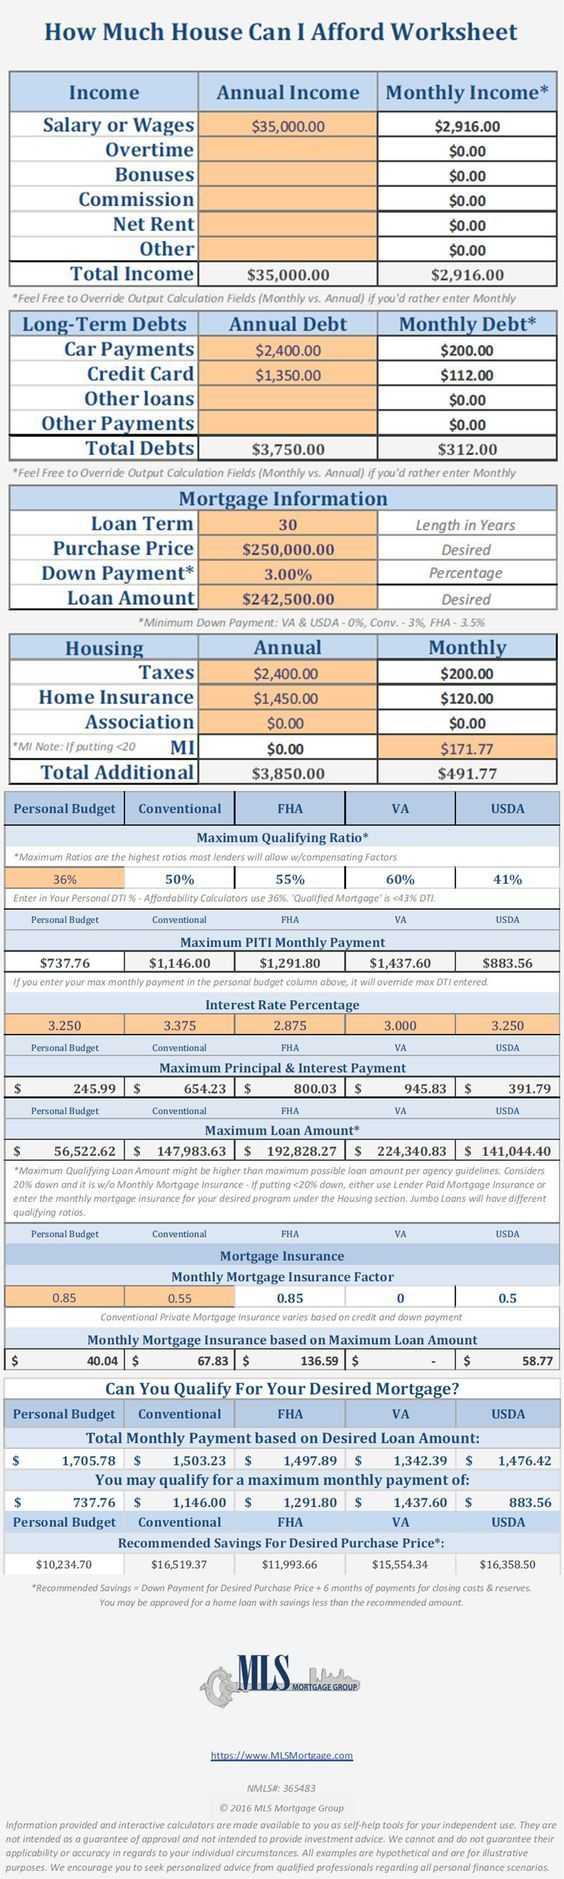 Free Download! How Much House Can I Afford Worksheet - Compares Your Personal Budget, Conventional Financing, FHA, and even VA and USDA home loan options! Discover if you can obtain the home loan you desire.